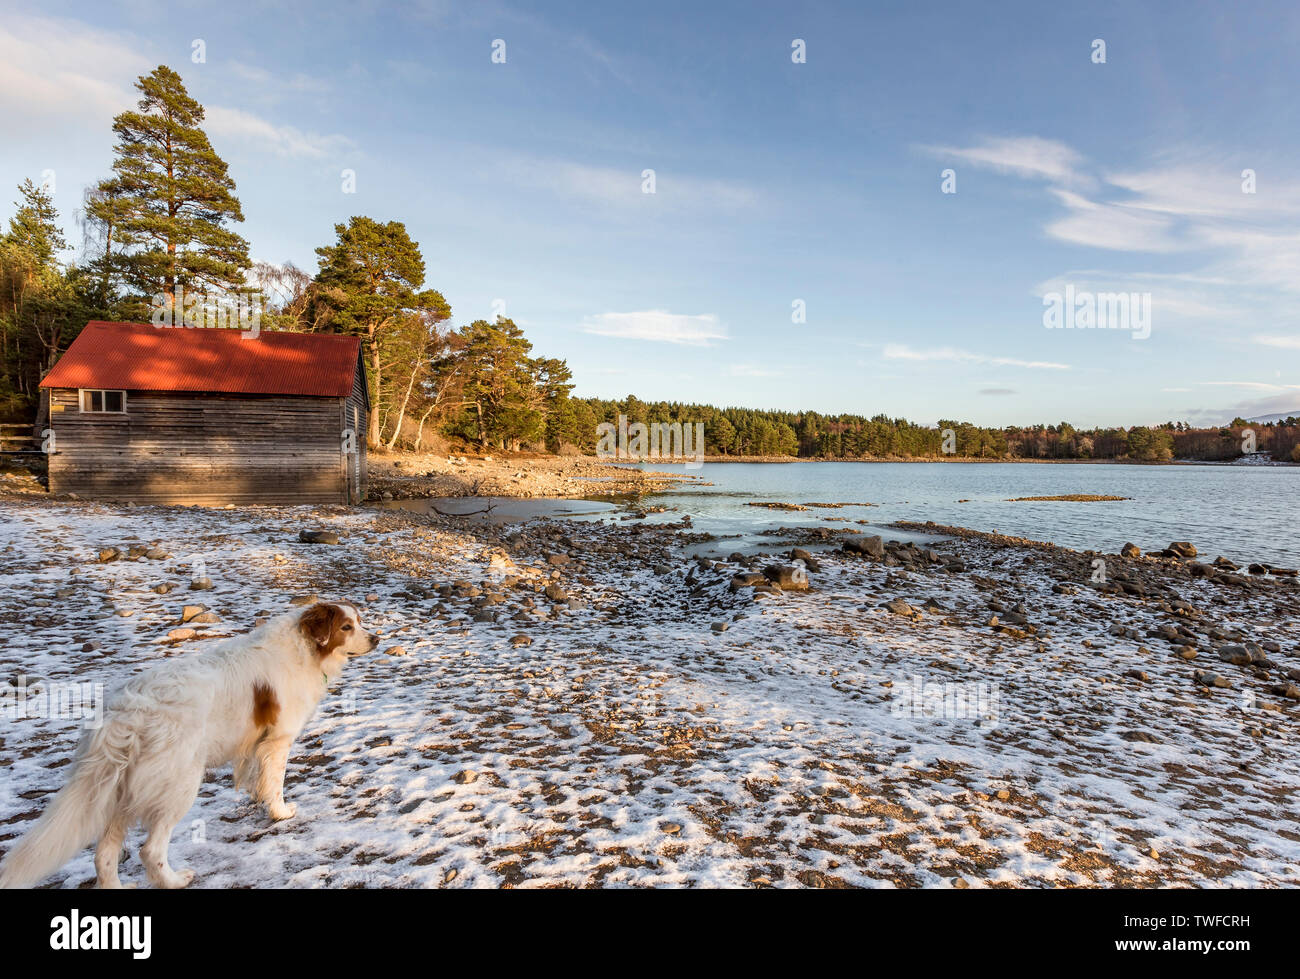 Dog at Loch Vaa in the Cairngorms National Park of Scotland. - Stock Image